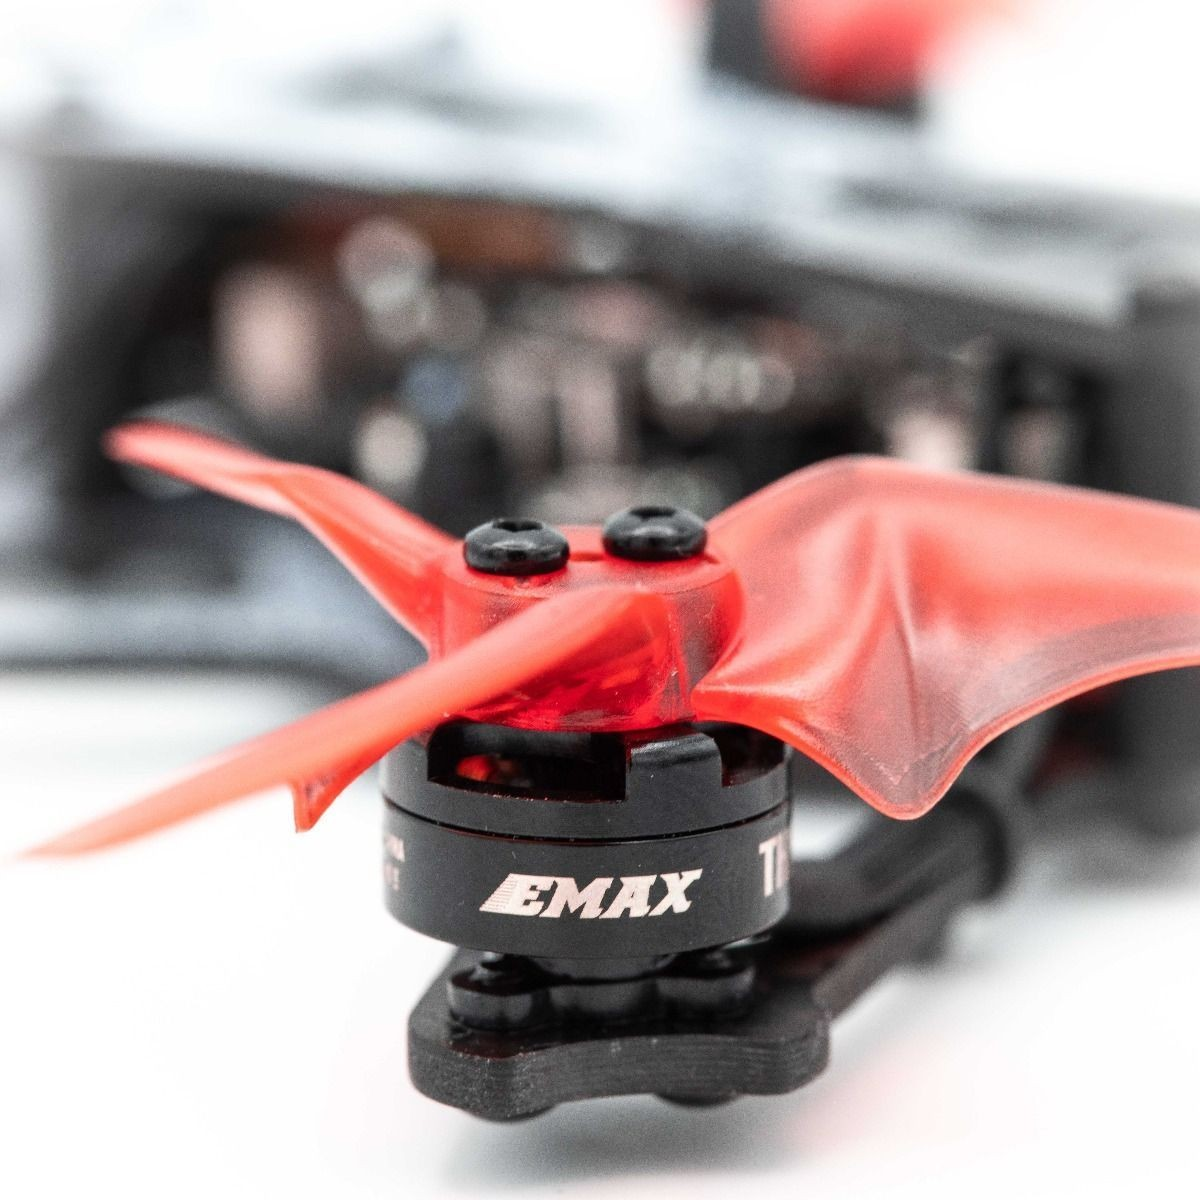 EMAX TinyHawk II Freestyle 2S Micro Brushless FPV Drone